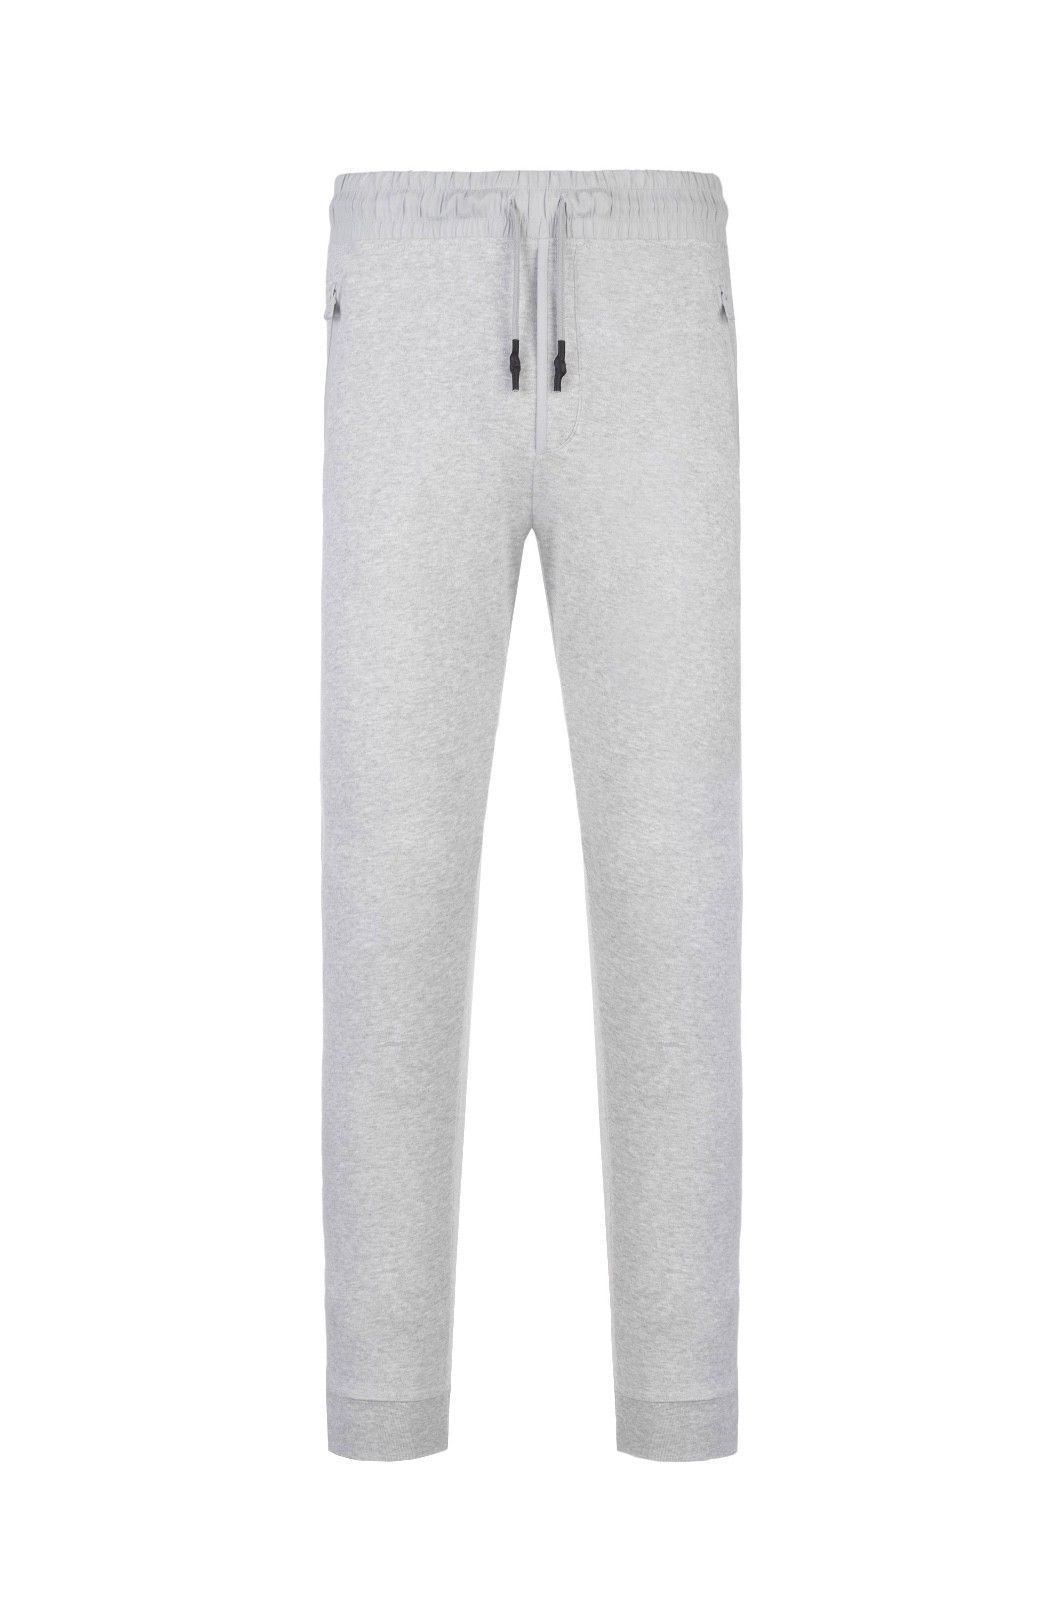 Hugo Boss Men's Premium Sport Gym Workout Track Suit Pants Gray 50372074